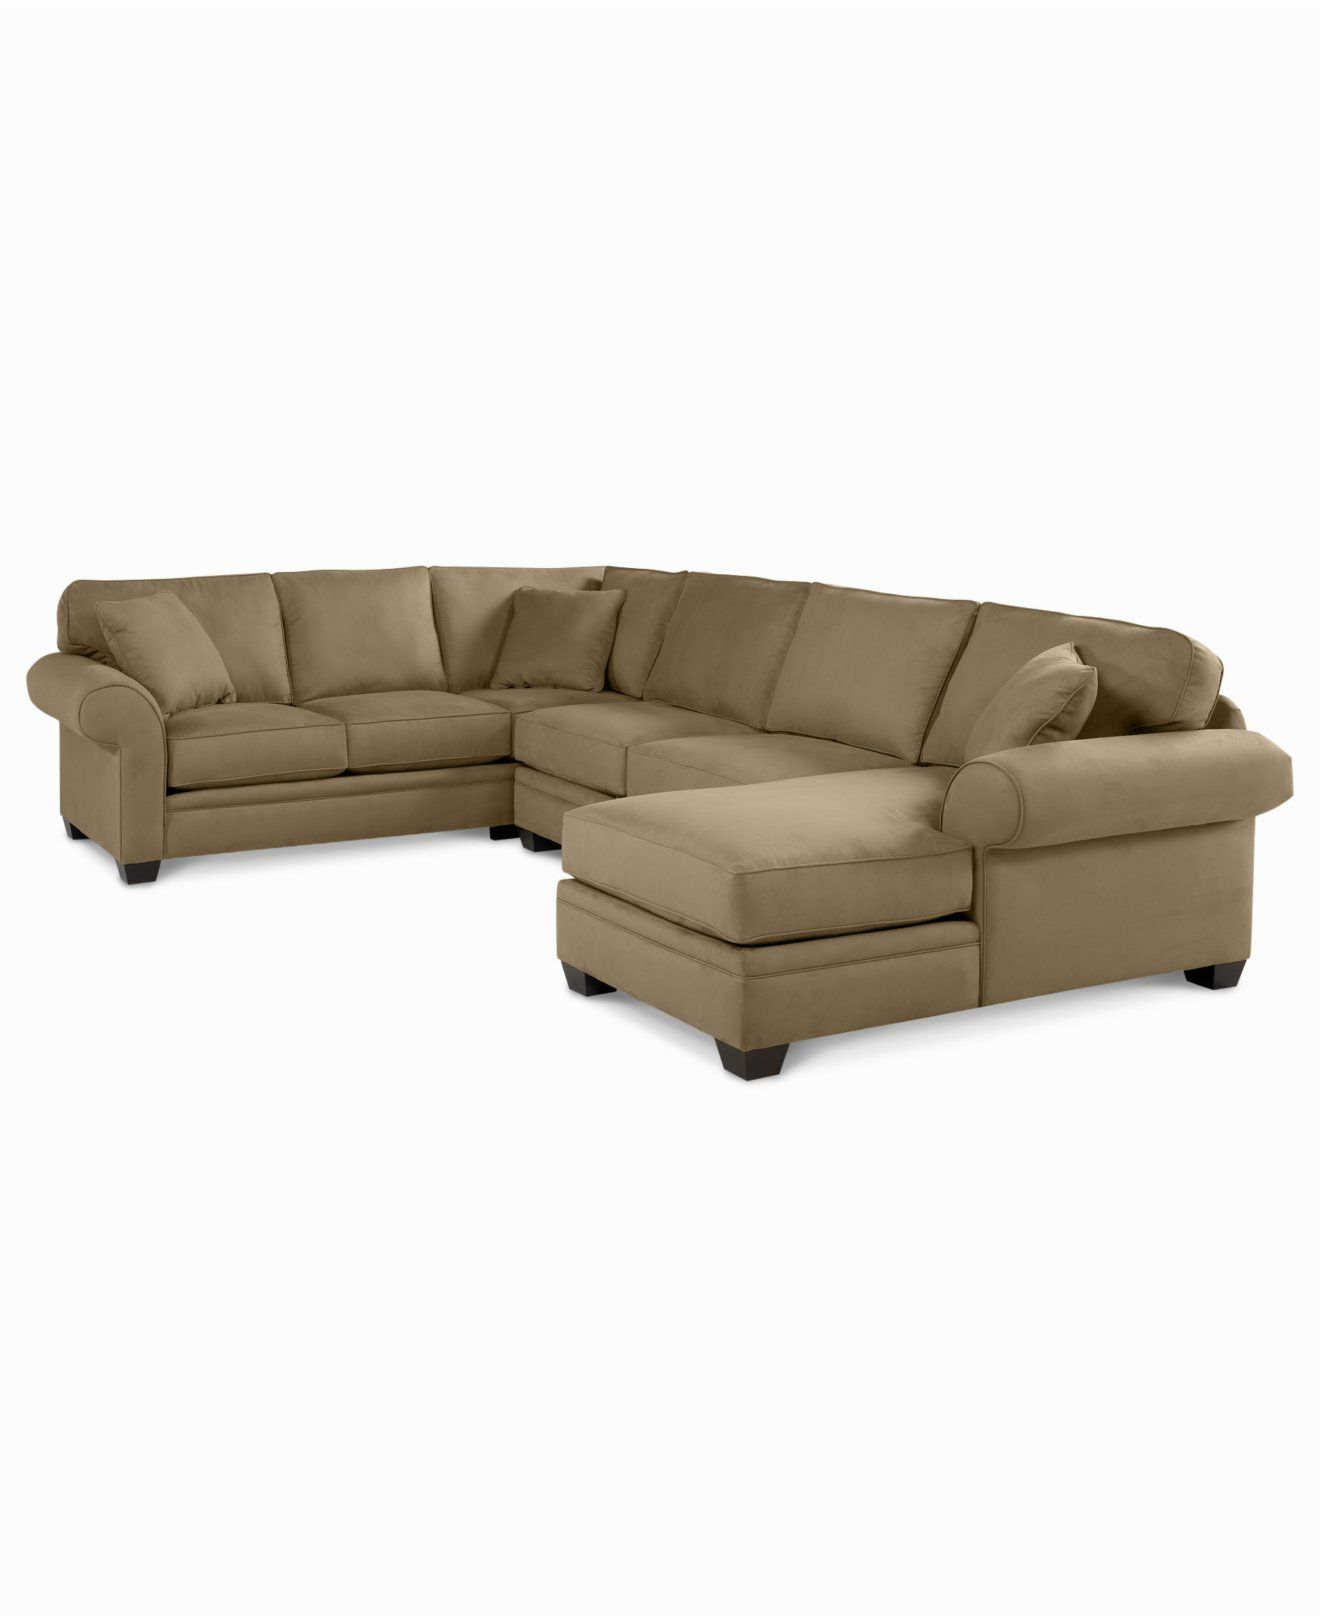 Raja Fabric Microfiber 3 Piece Chaise Sectional Sofa Sectional